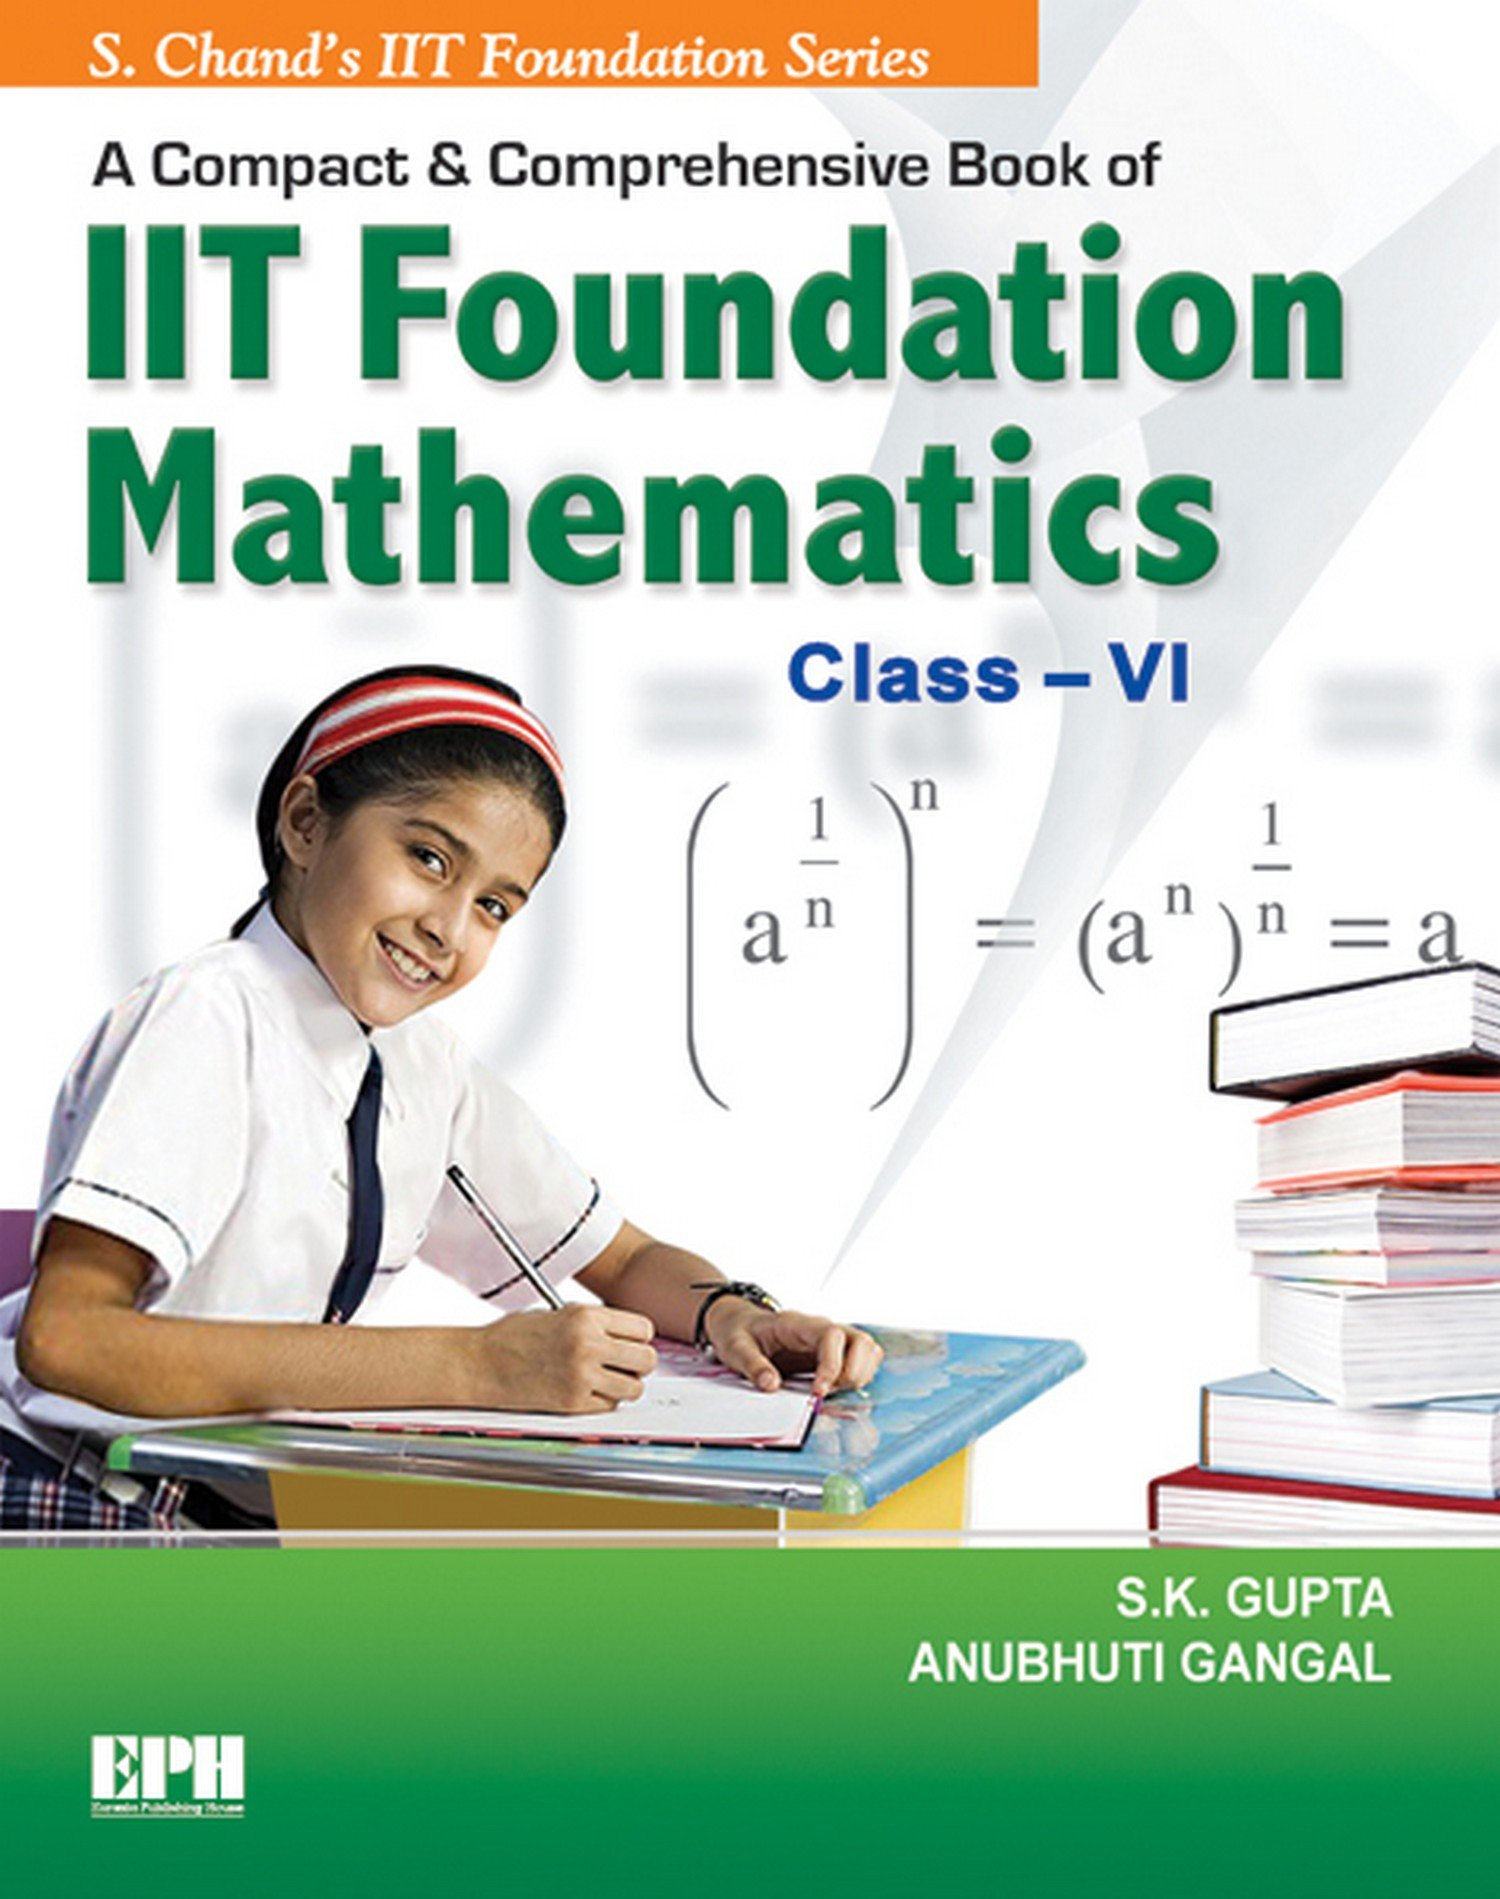 Buy A Compact & Comprehensive Book of IIT Foundation